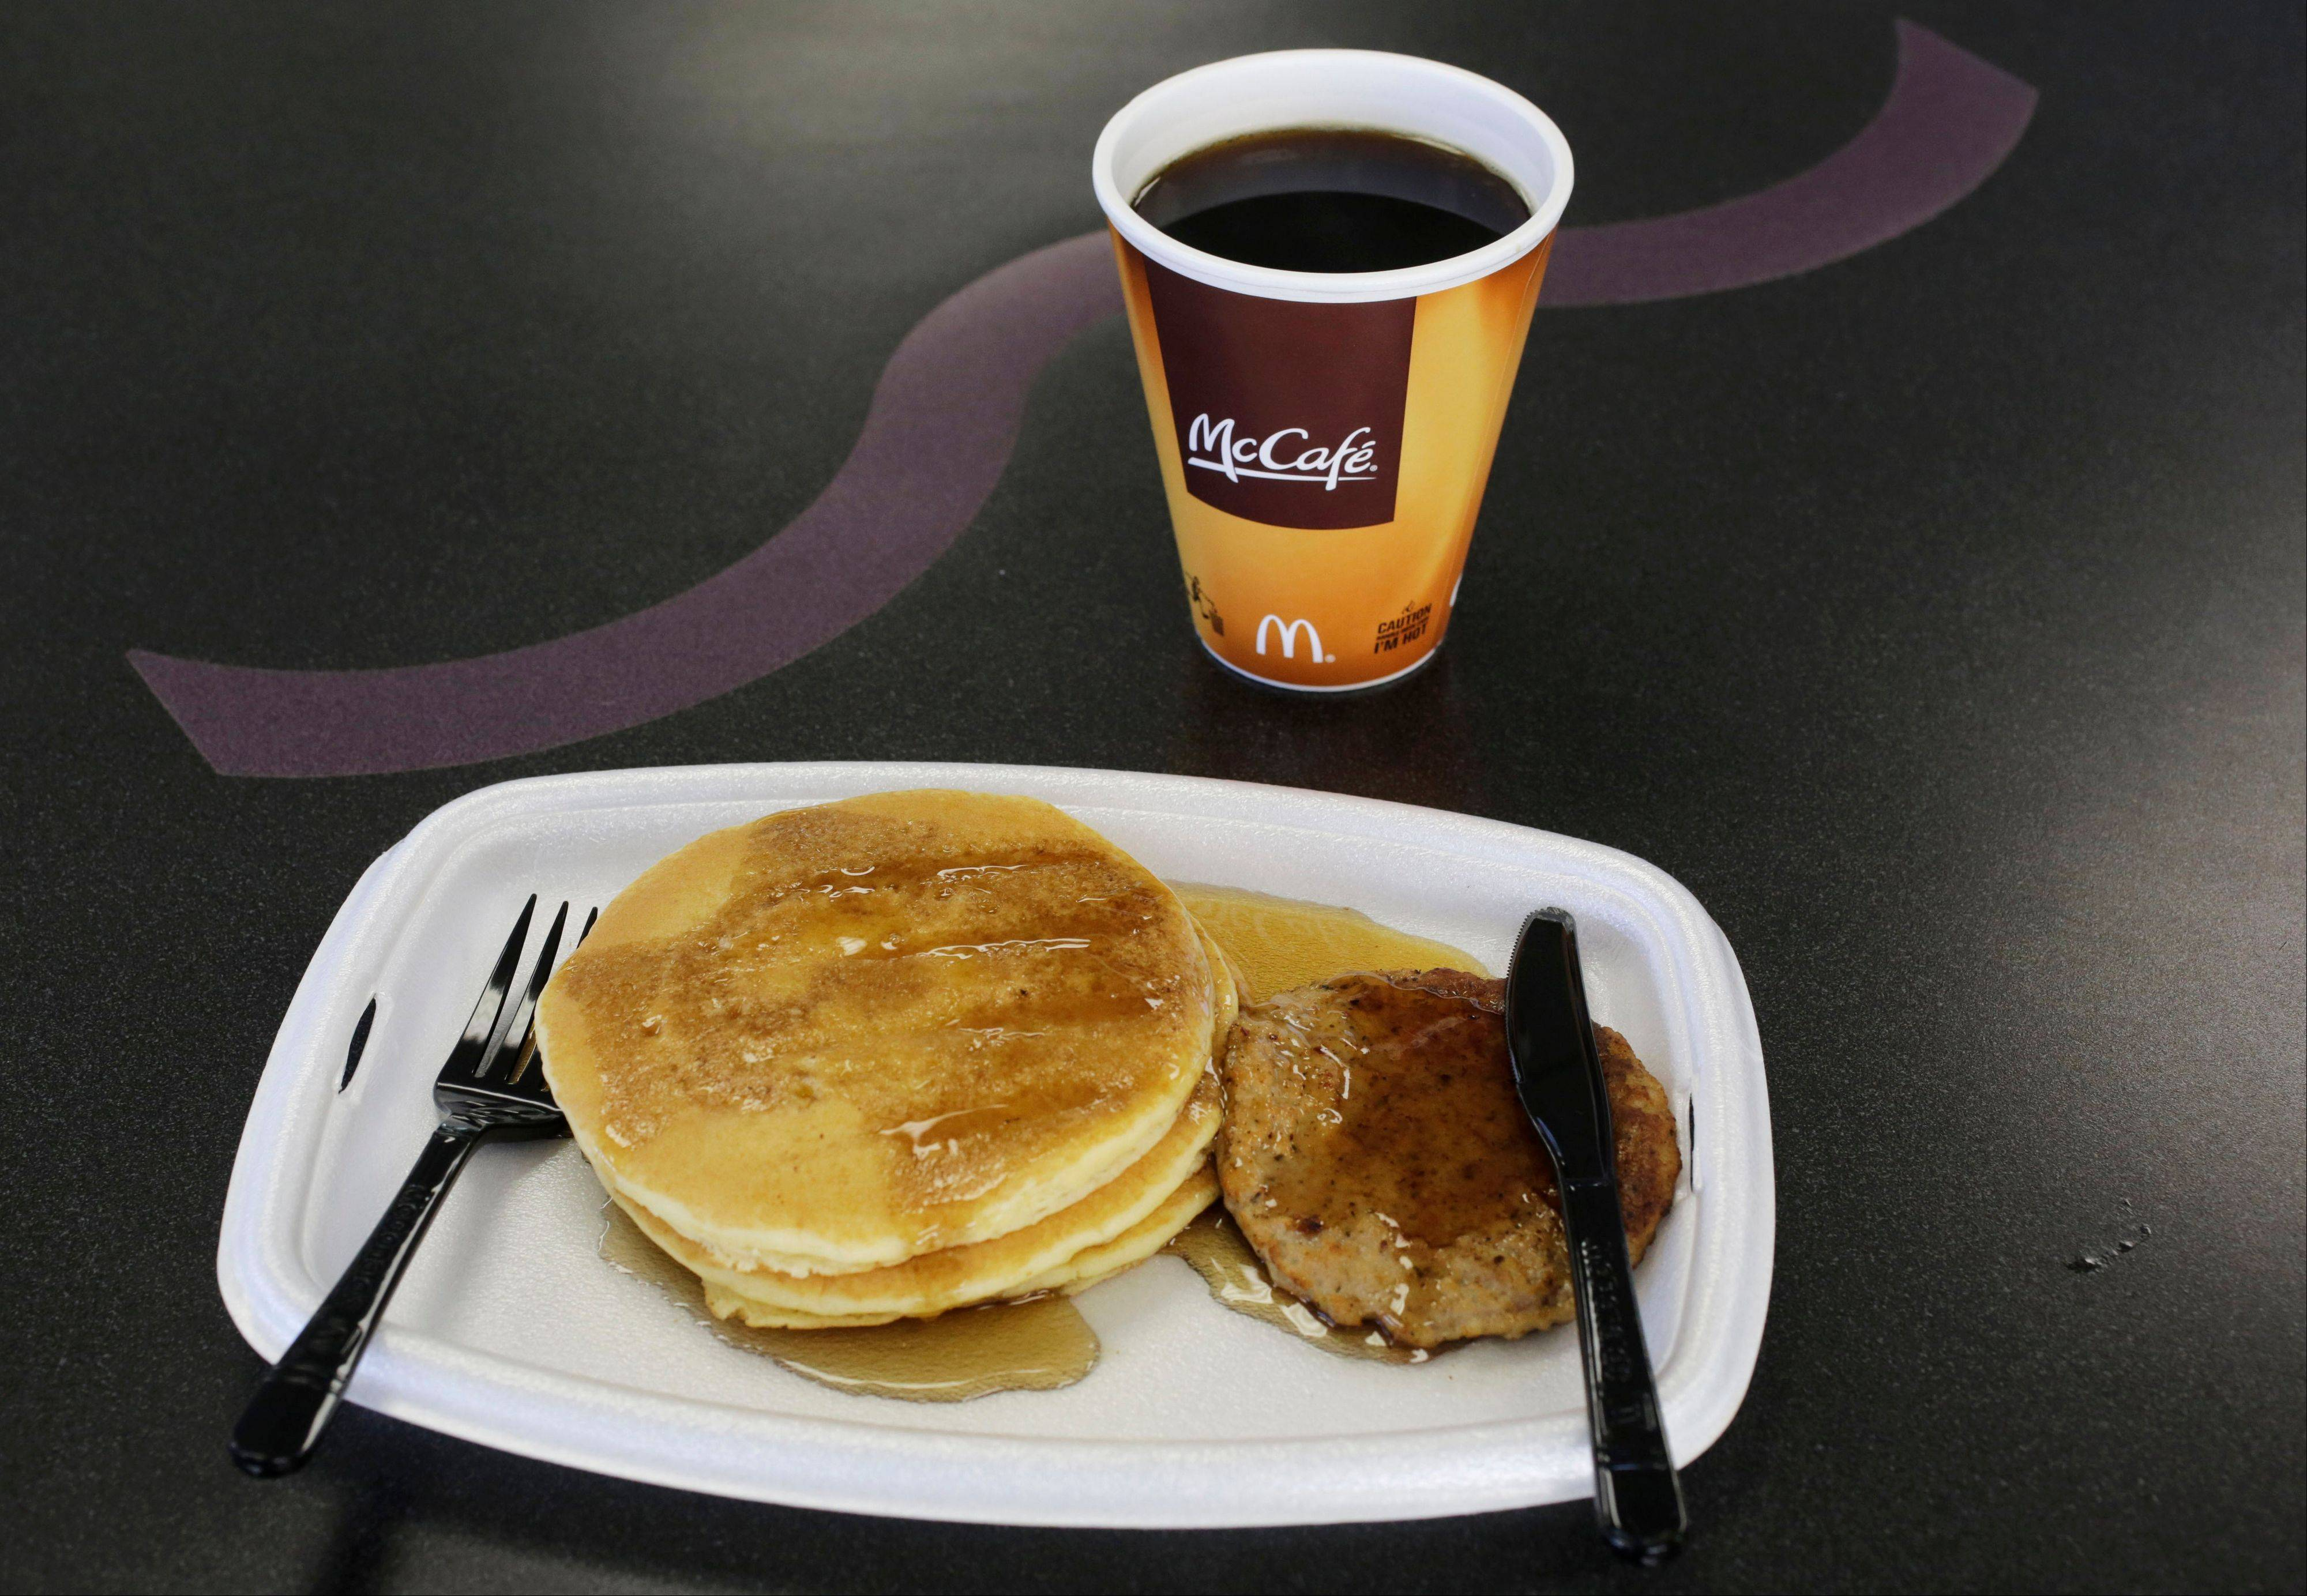 A McDonald's breakfast Thursday at a restaurant in New York. The pancakes and sausage are served on a foam tray and coffee is served in a foam cup.